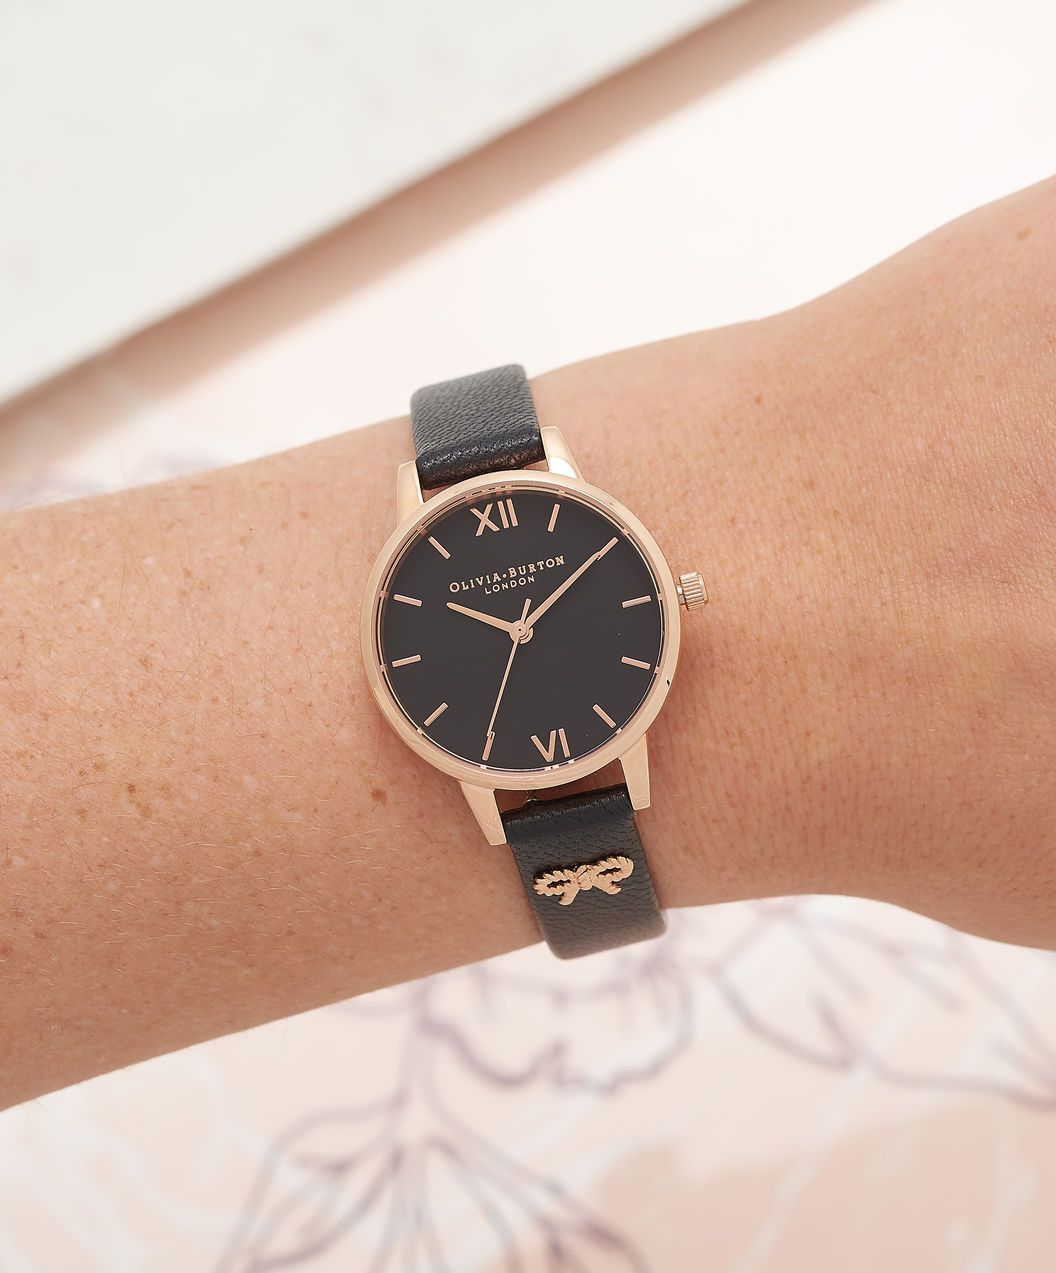 f8b09546b77 OLIVIA BURTON LONDON Vintage Bow Black & Rose Gold Watch OB16VB07 – Midi  Dial in Black and Rose Gold - Other view